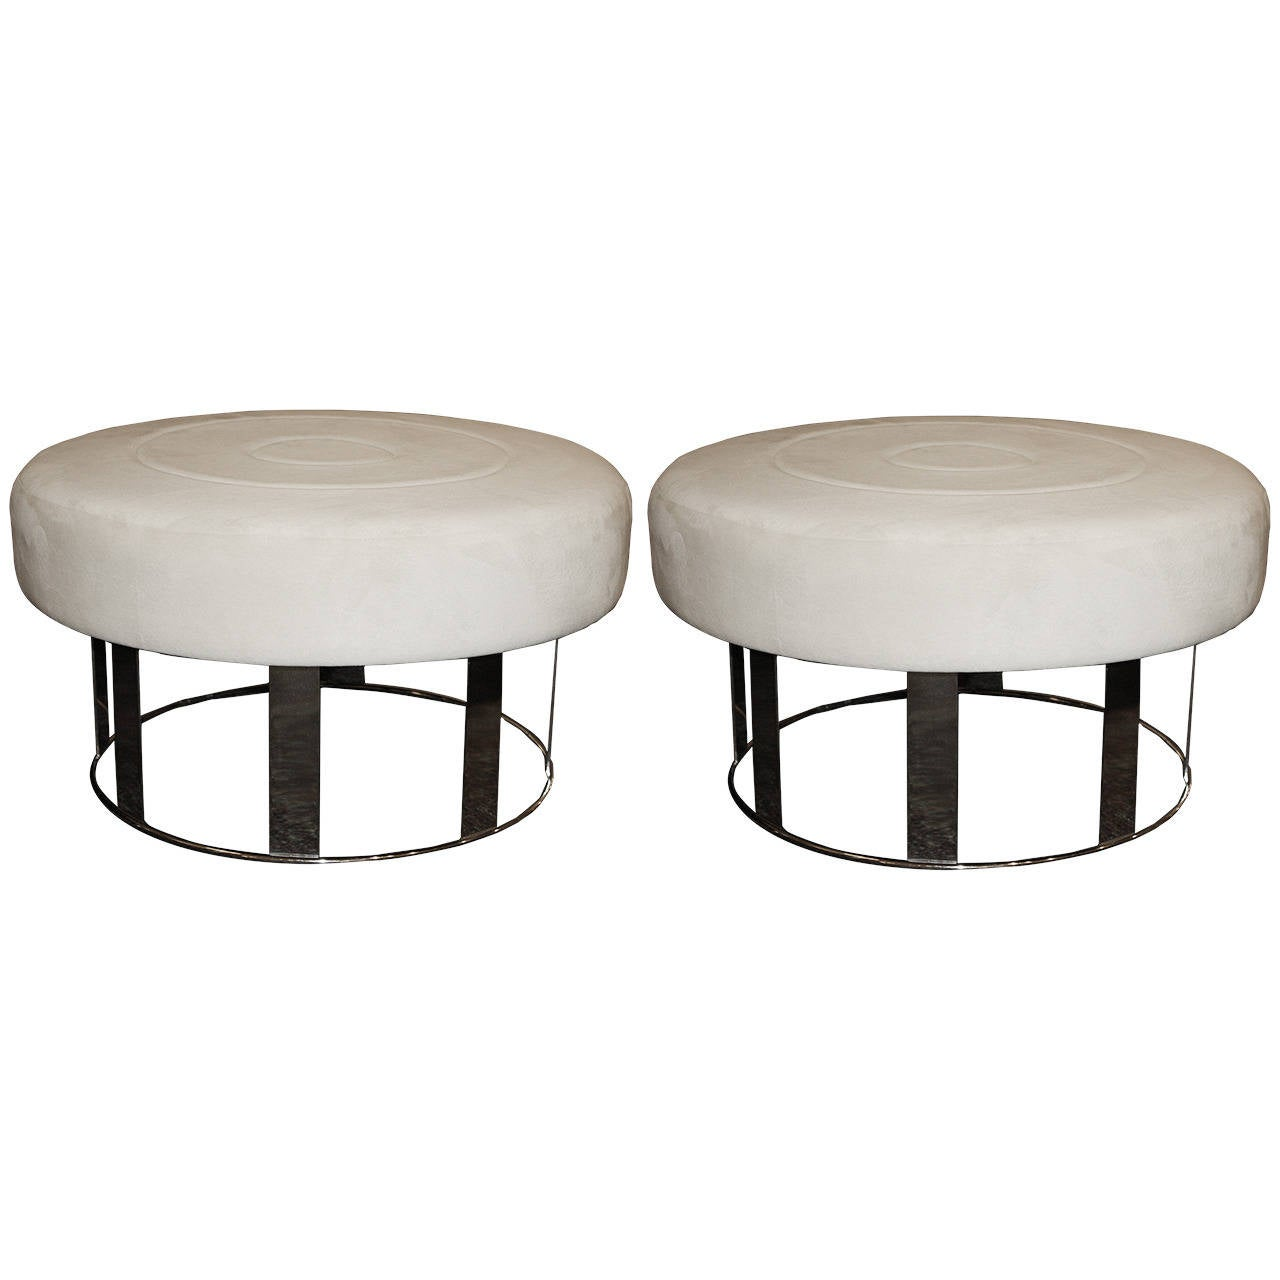 Pair of Nickel-Plated Ottomans 1